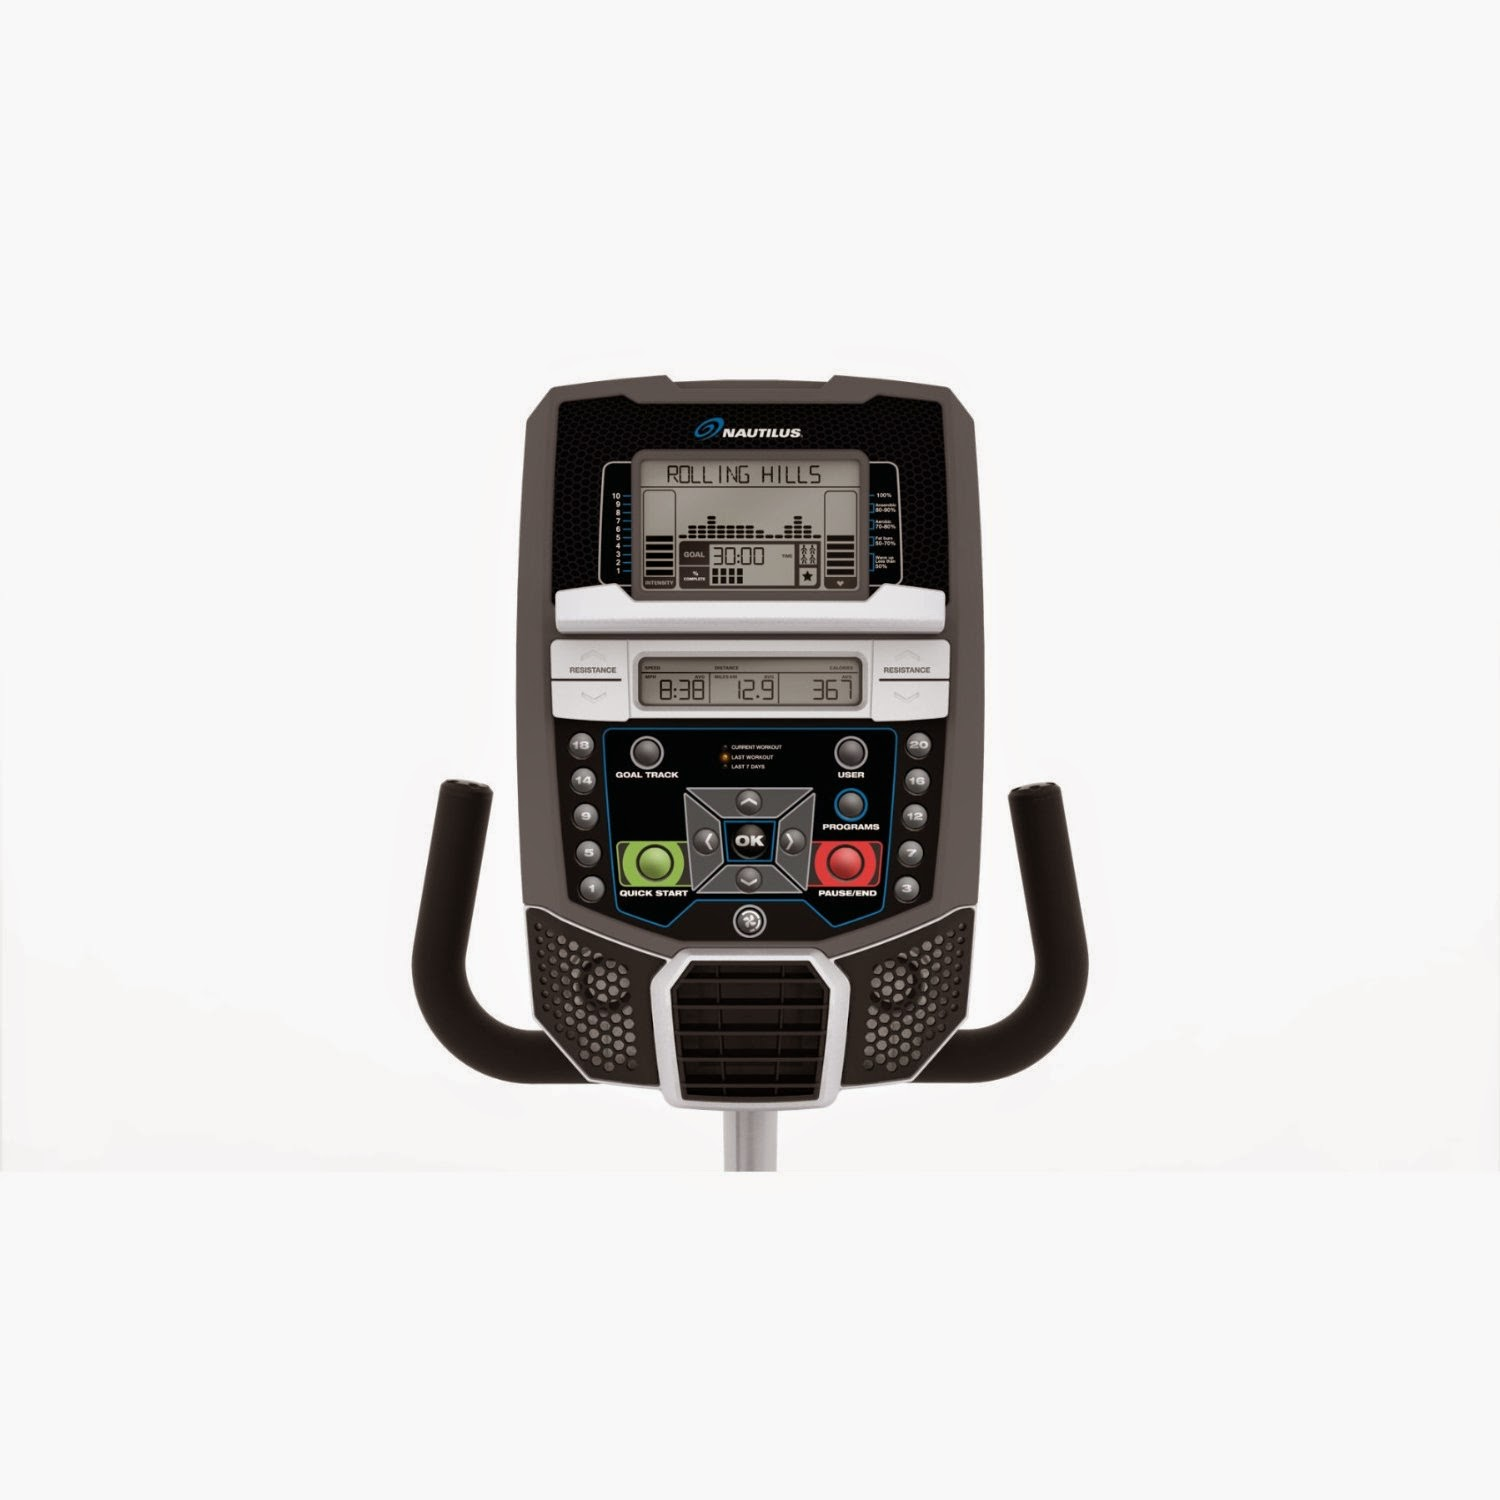 Nautilus R614 Dual Track LCD console display